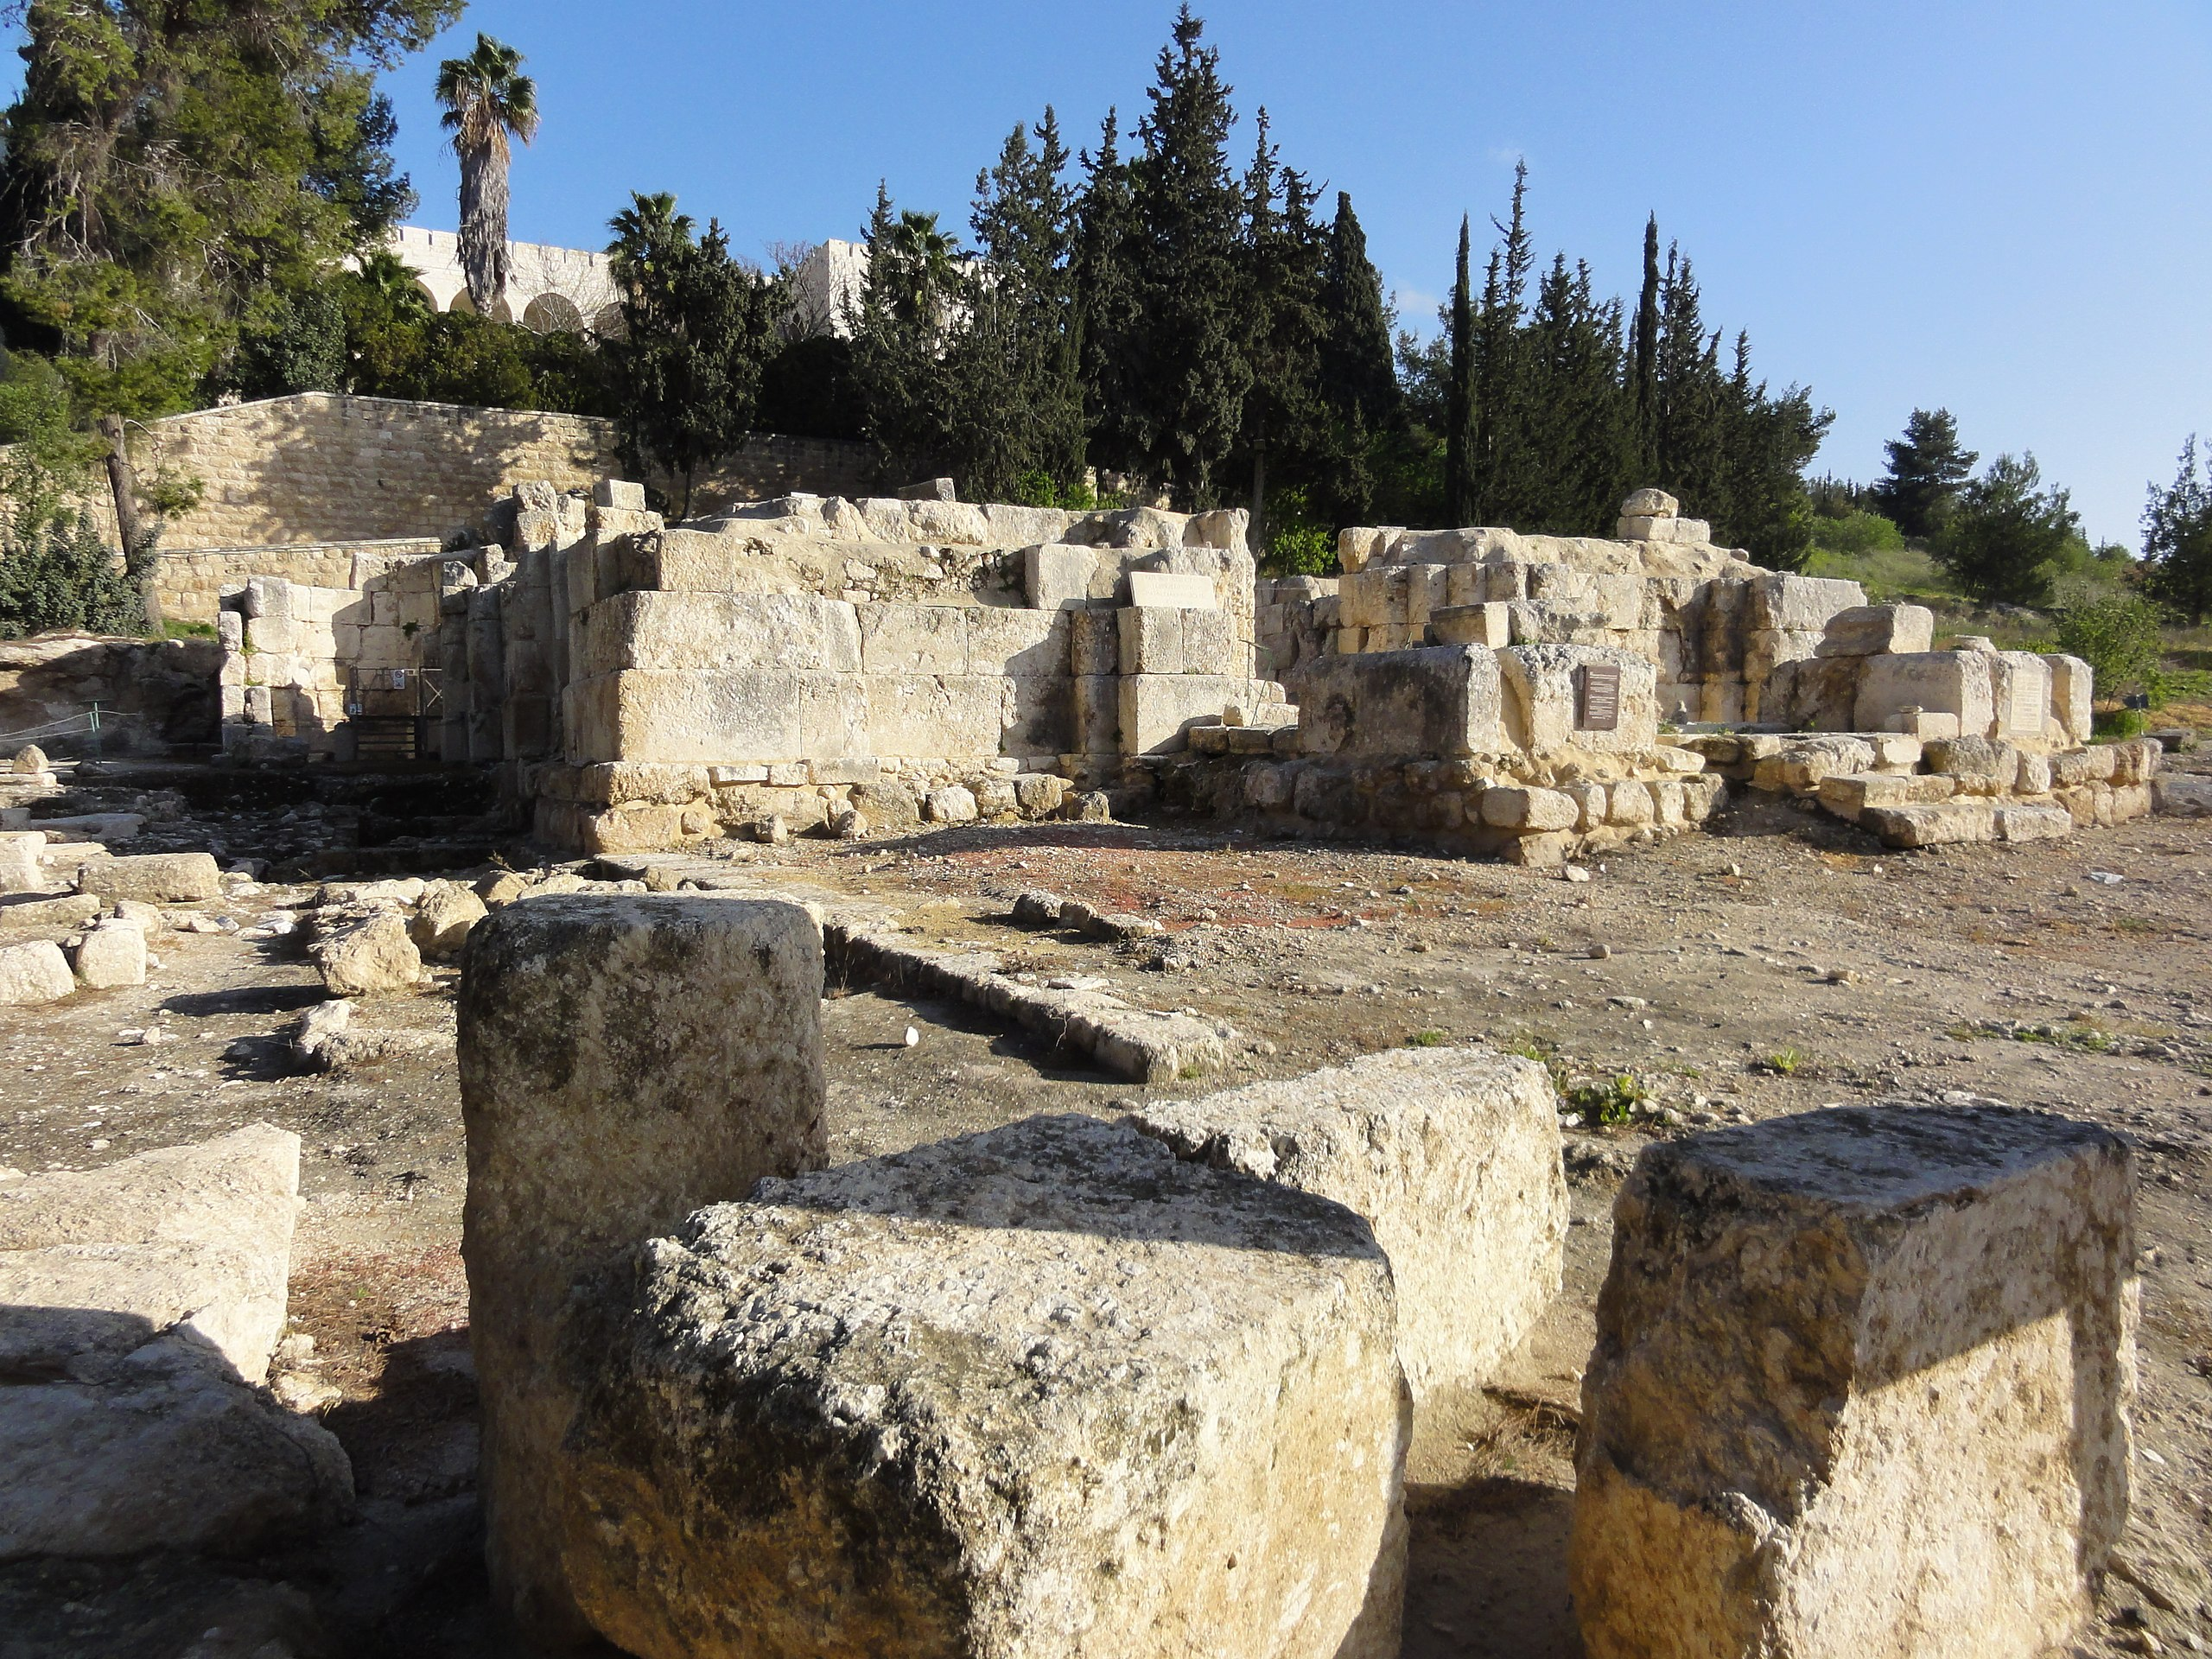 The site of Emmaus-Nicopolis, called 'Amwas' by the Arabs. The plague of Amwas first struck the Muslim Arab troops encamped there before spreading across Syria–Palestine and affecting Egypt and Iraq